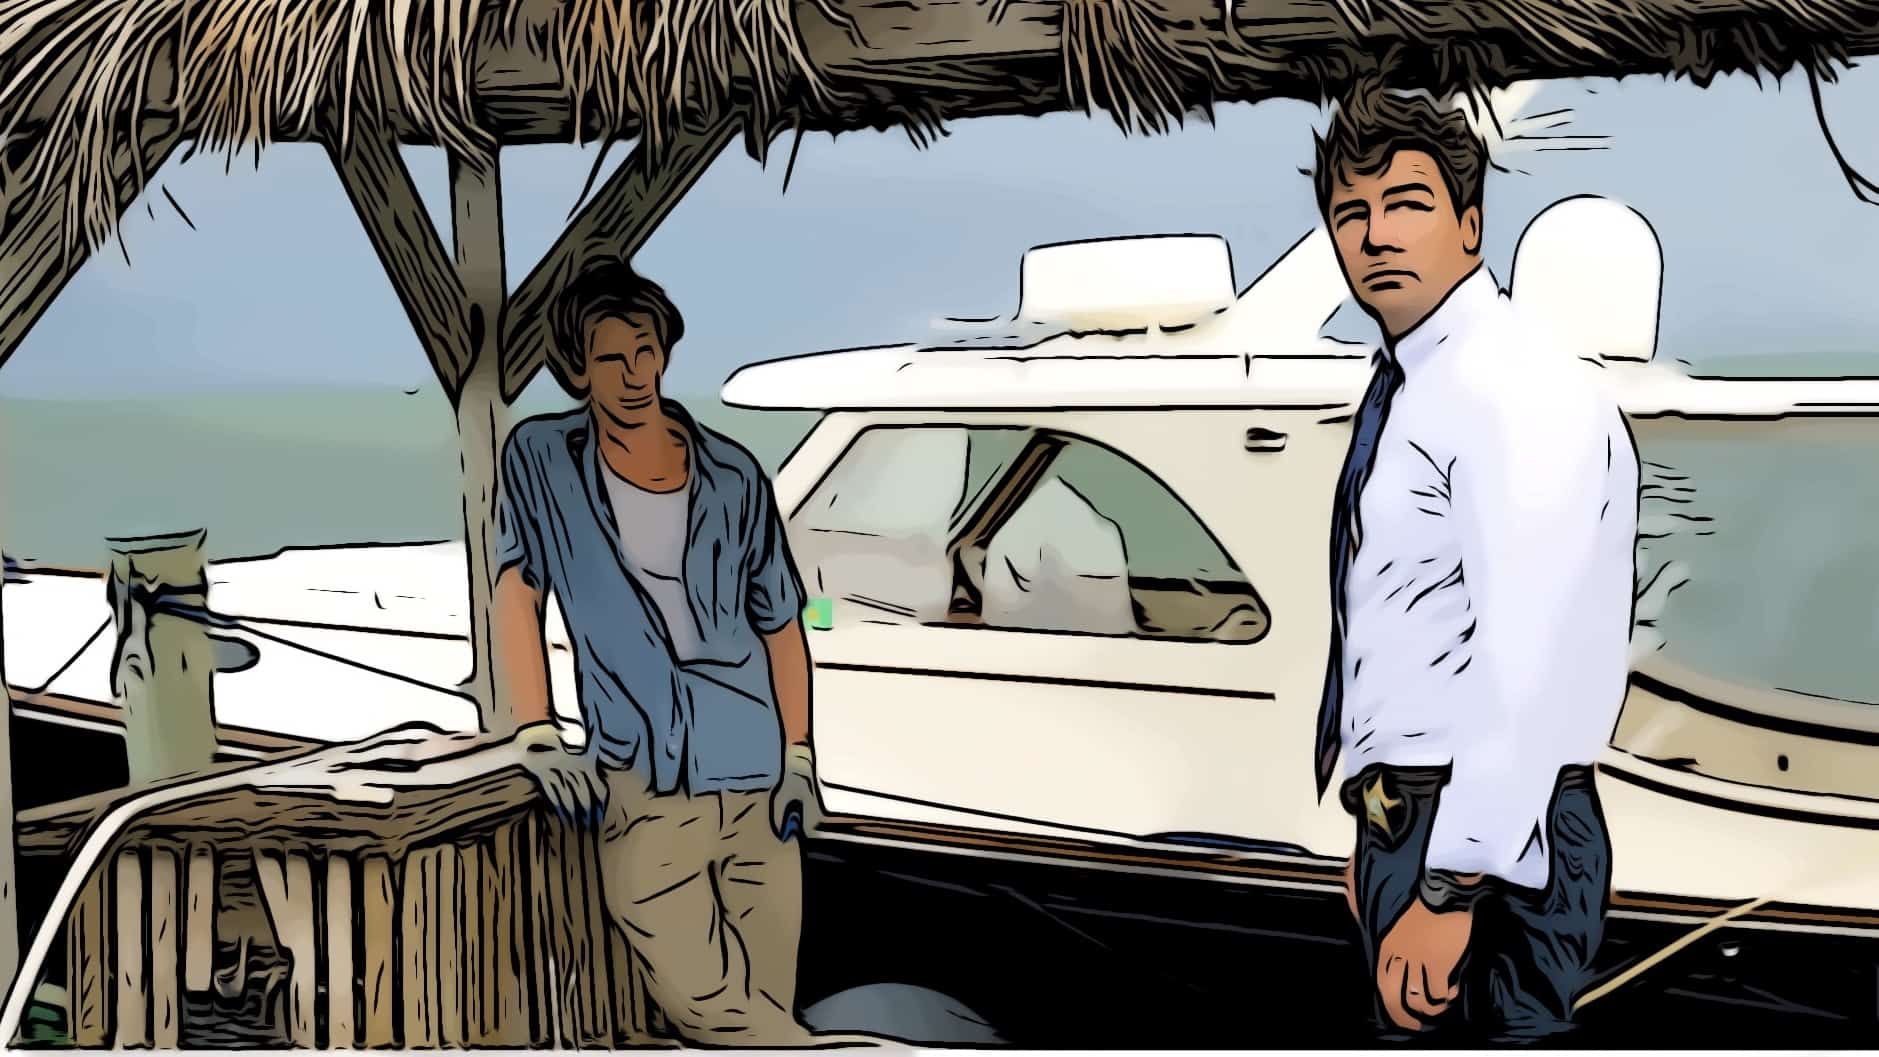 Scene from Bloodline for where is Bloodline filmed post.